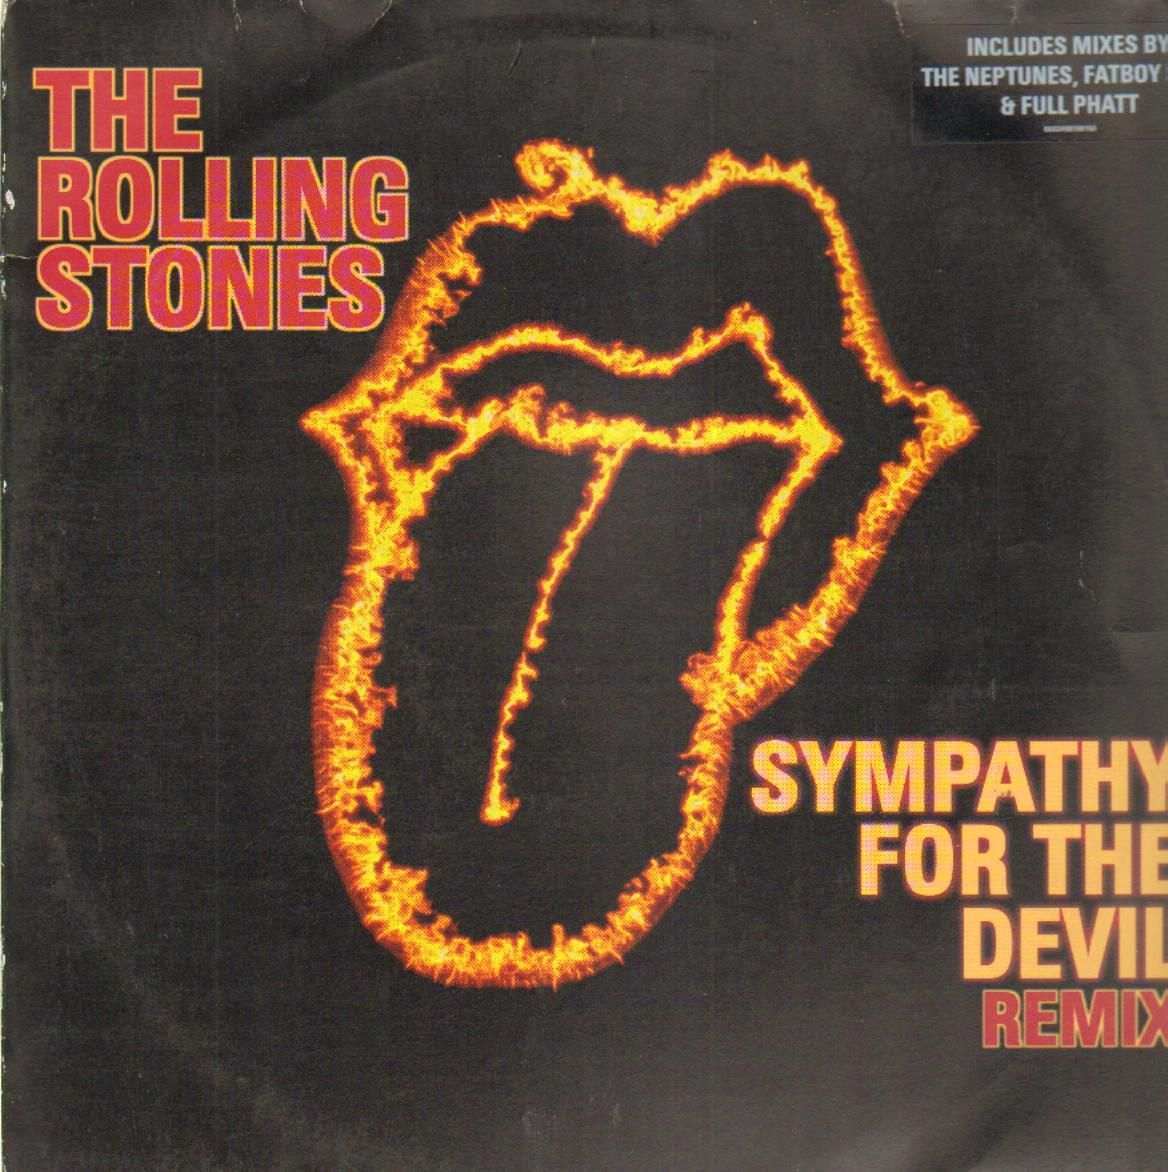 The Rolling Stones - Sympathy for the Devil Remix Stems